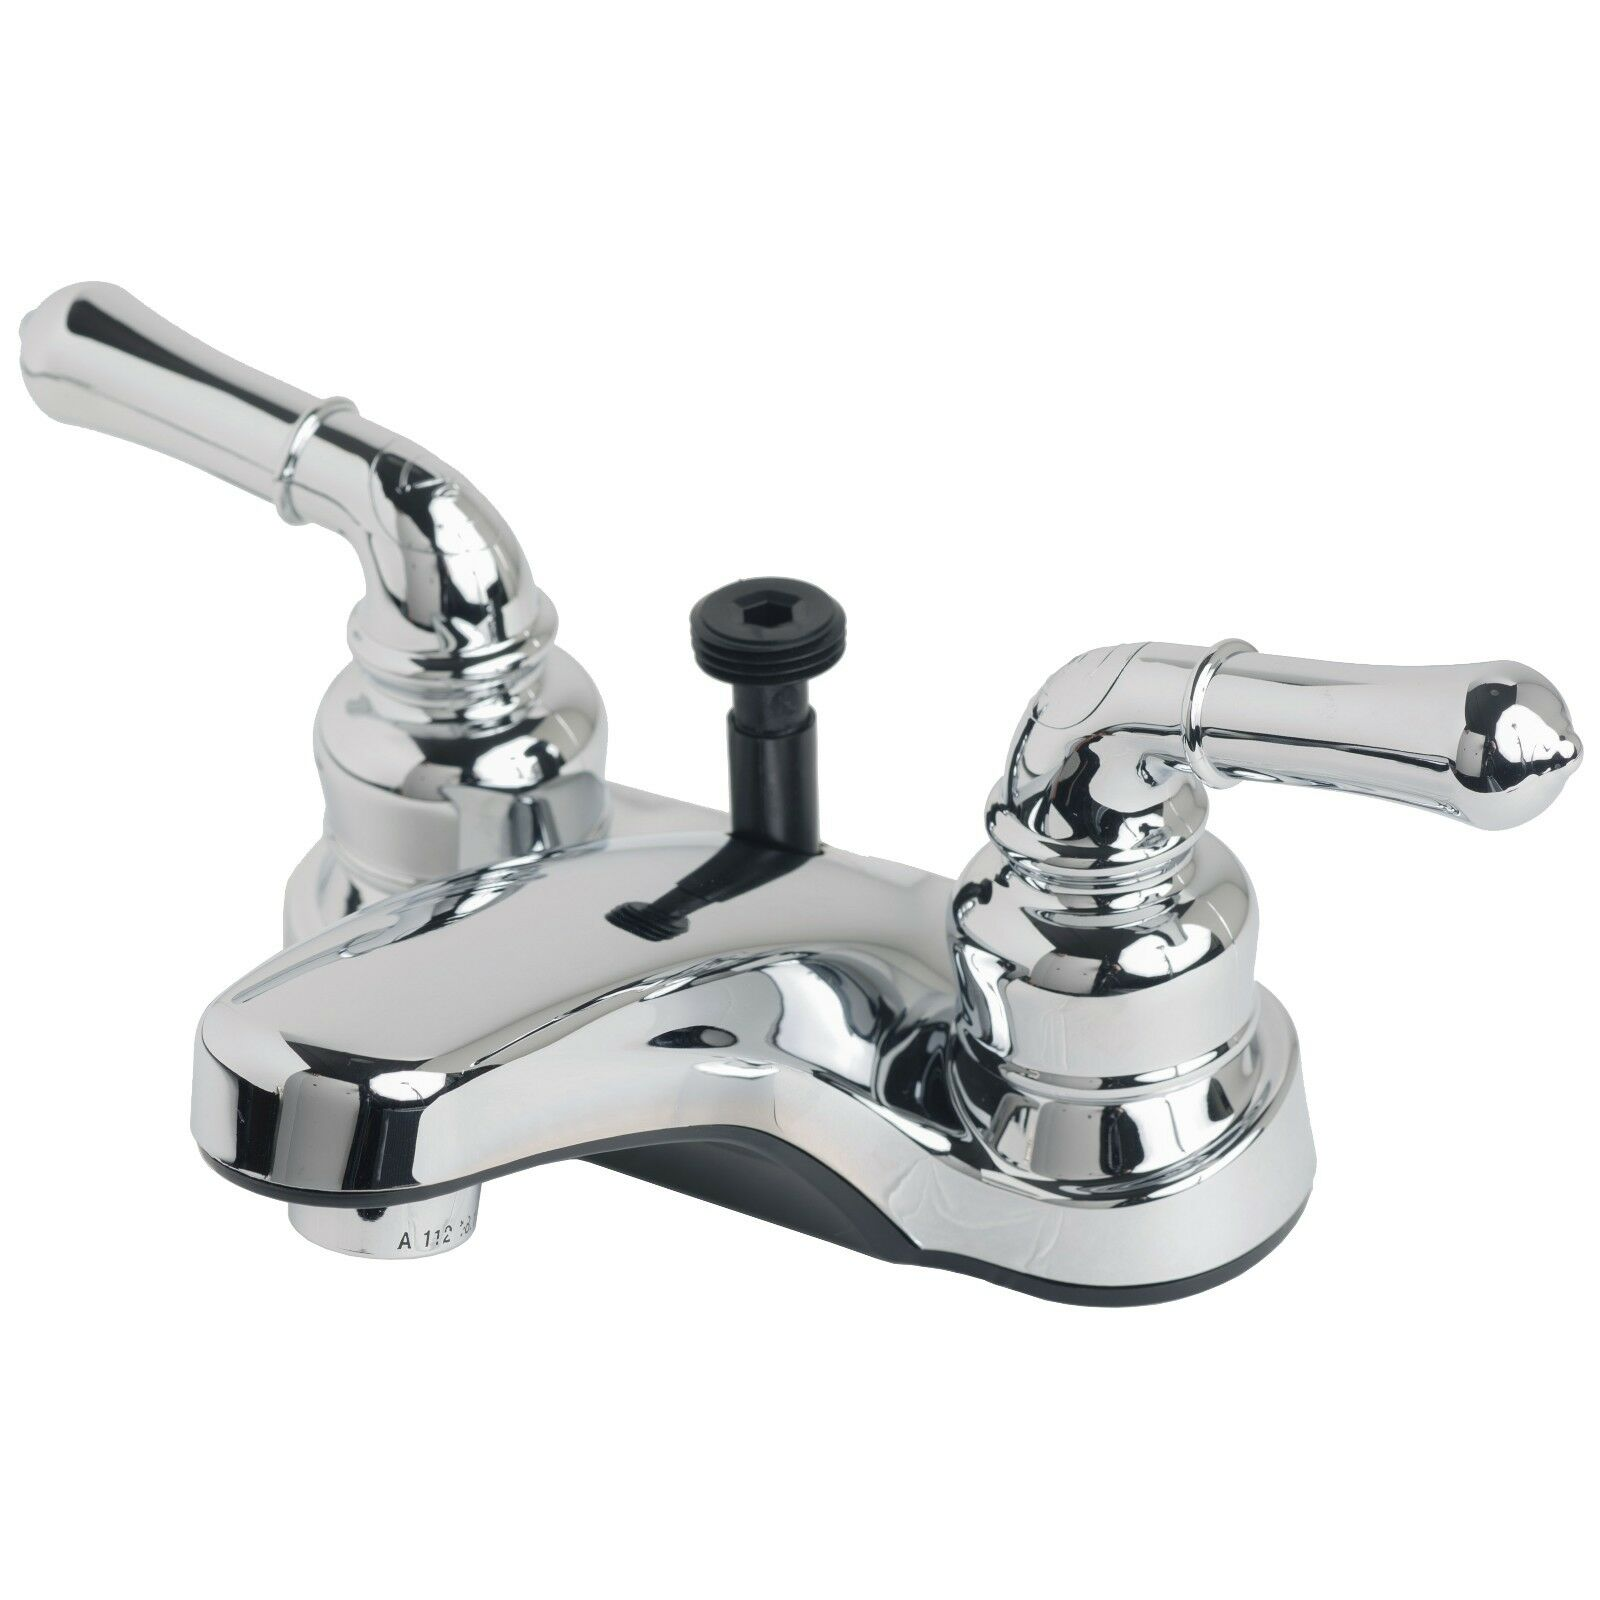 RV Bathroom Centerset Lavatory Faucet With Hand Shower Diverter ...